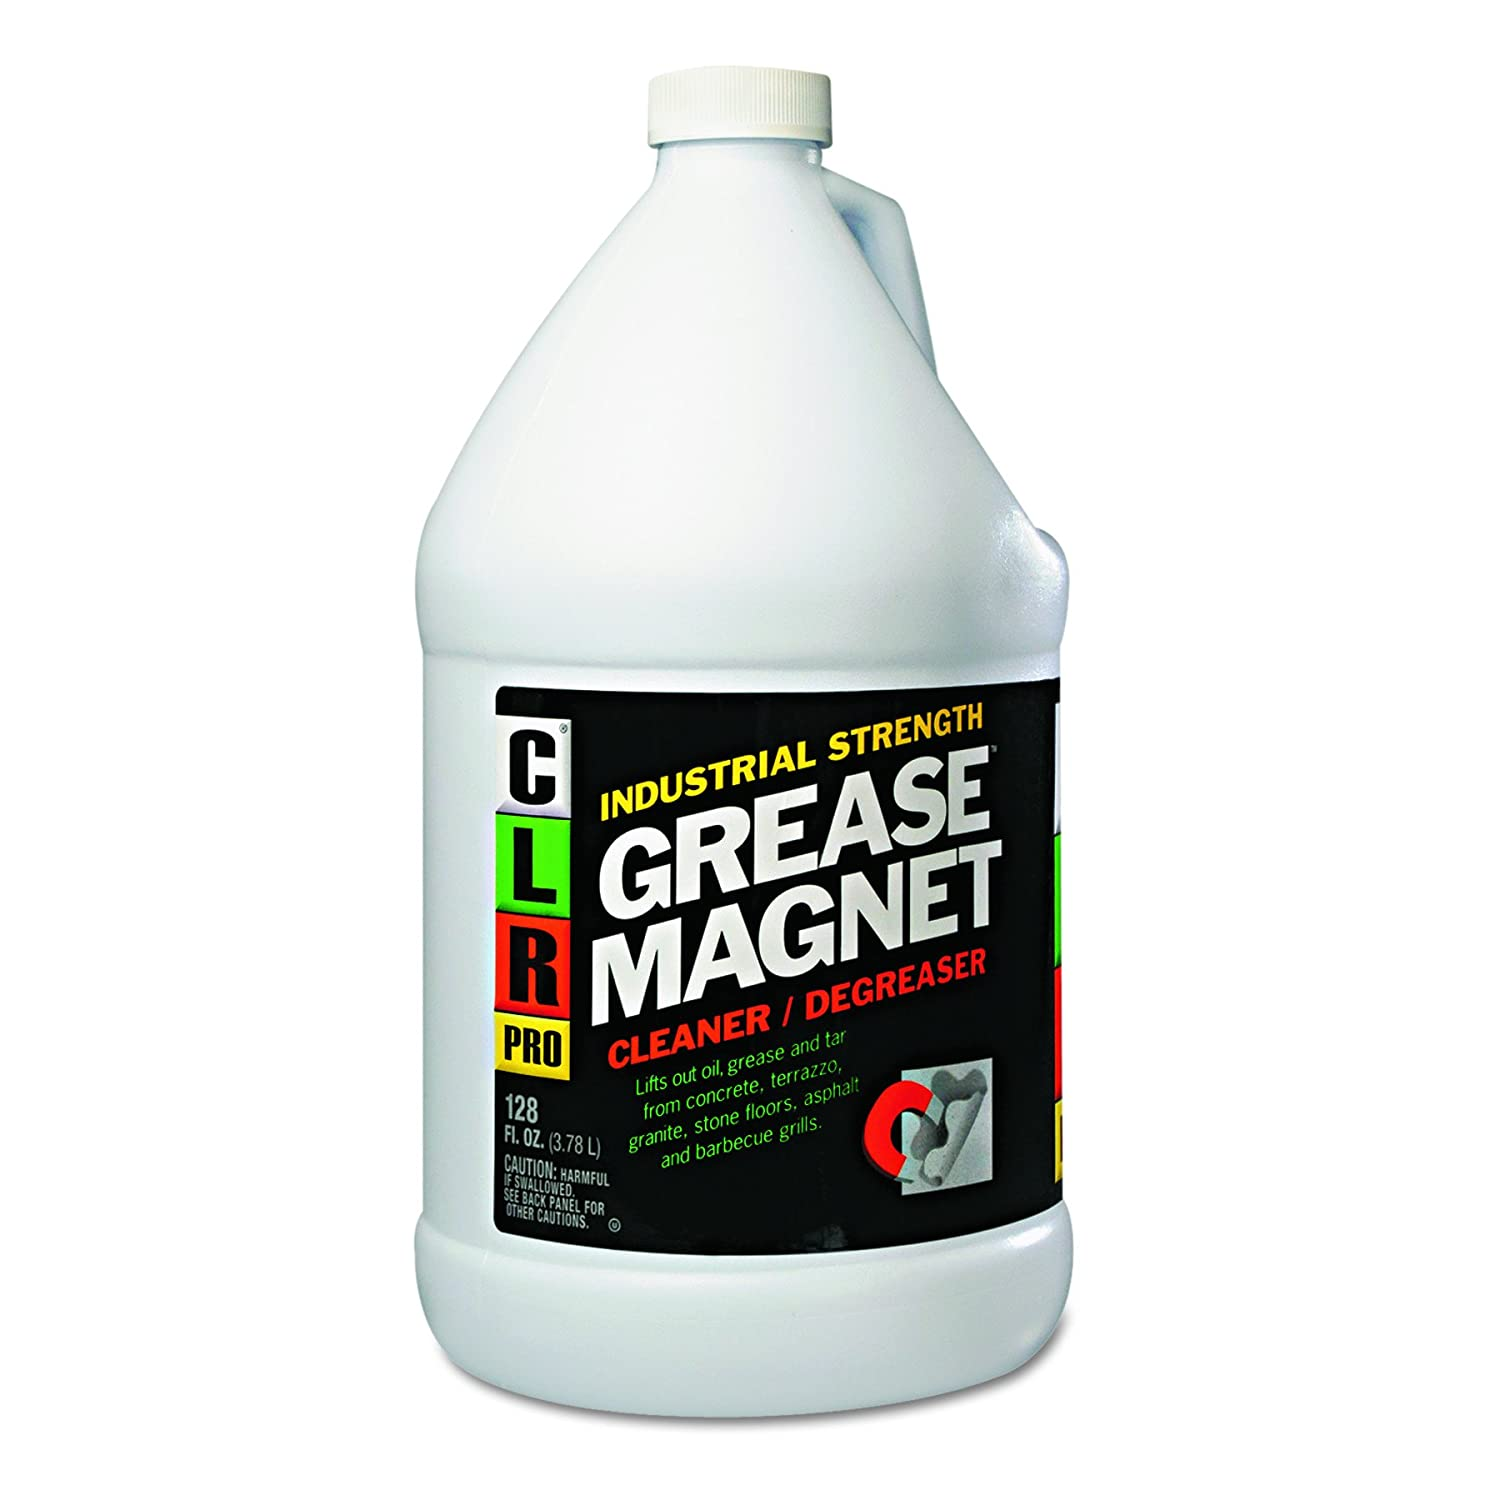 CLR PRO GM4PRO Grease Magnet, 1gal Bottle: Industrial Degreasers ...